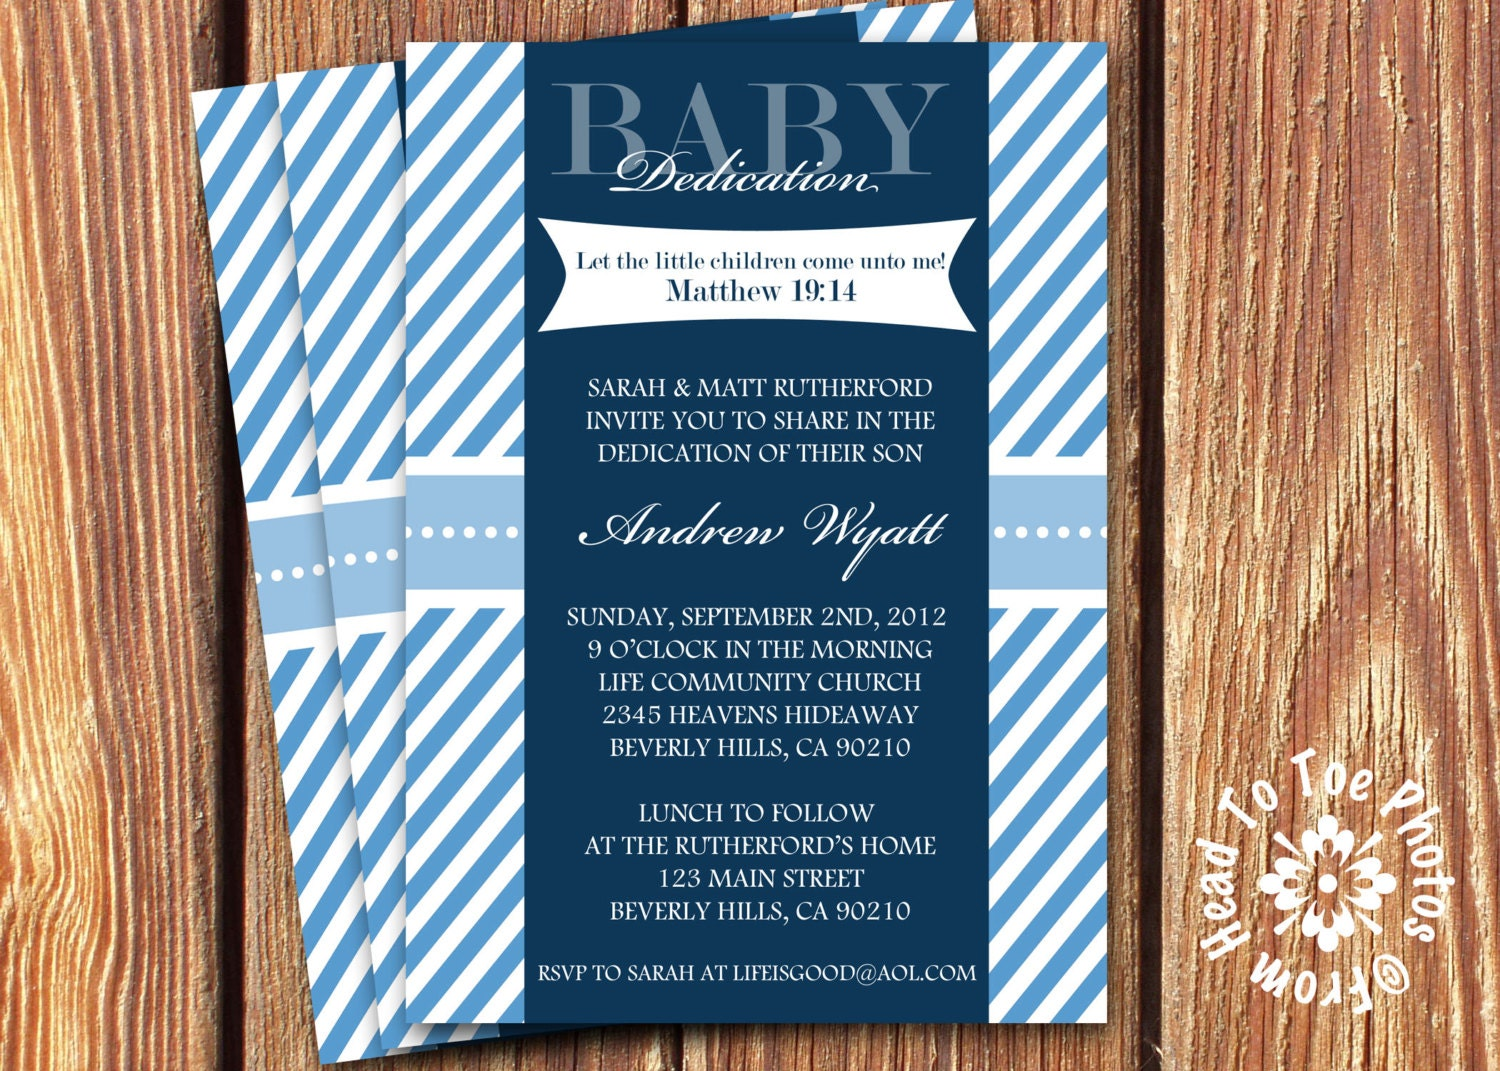 Sample Invitation Dedication. Sams Invitations were Great Template To Make Cool Design  Free Printable Invitation by